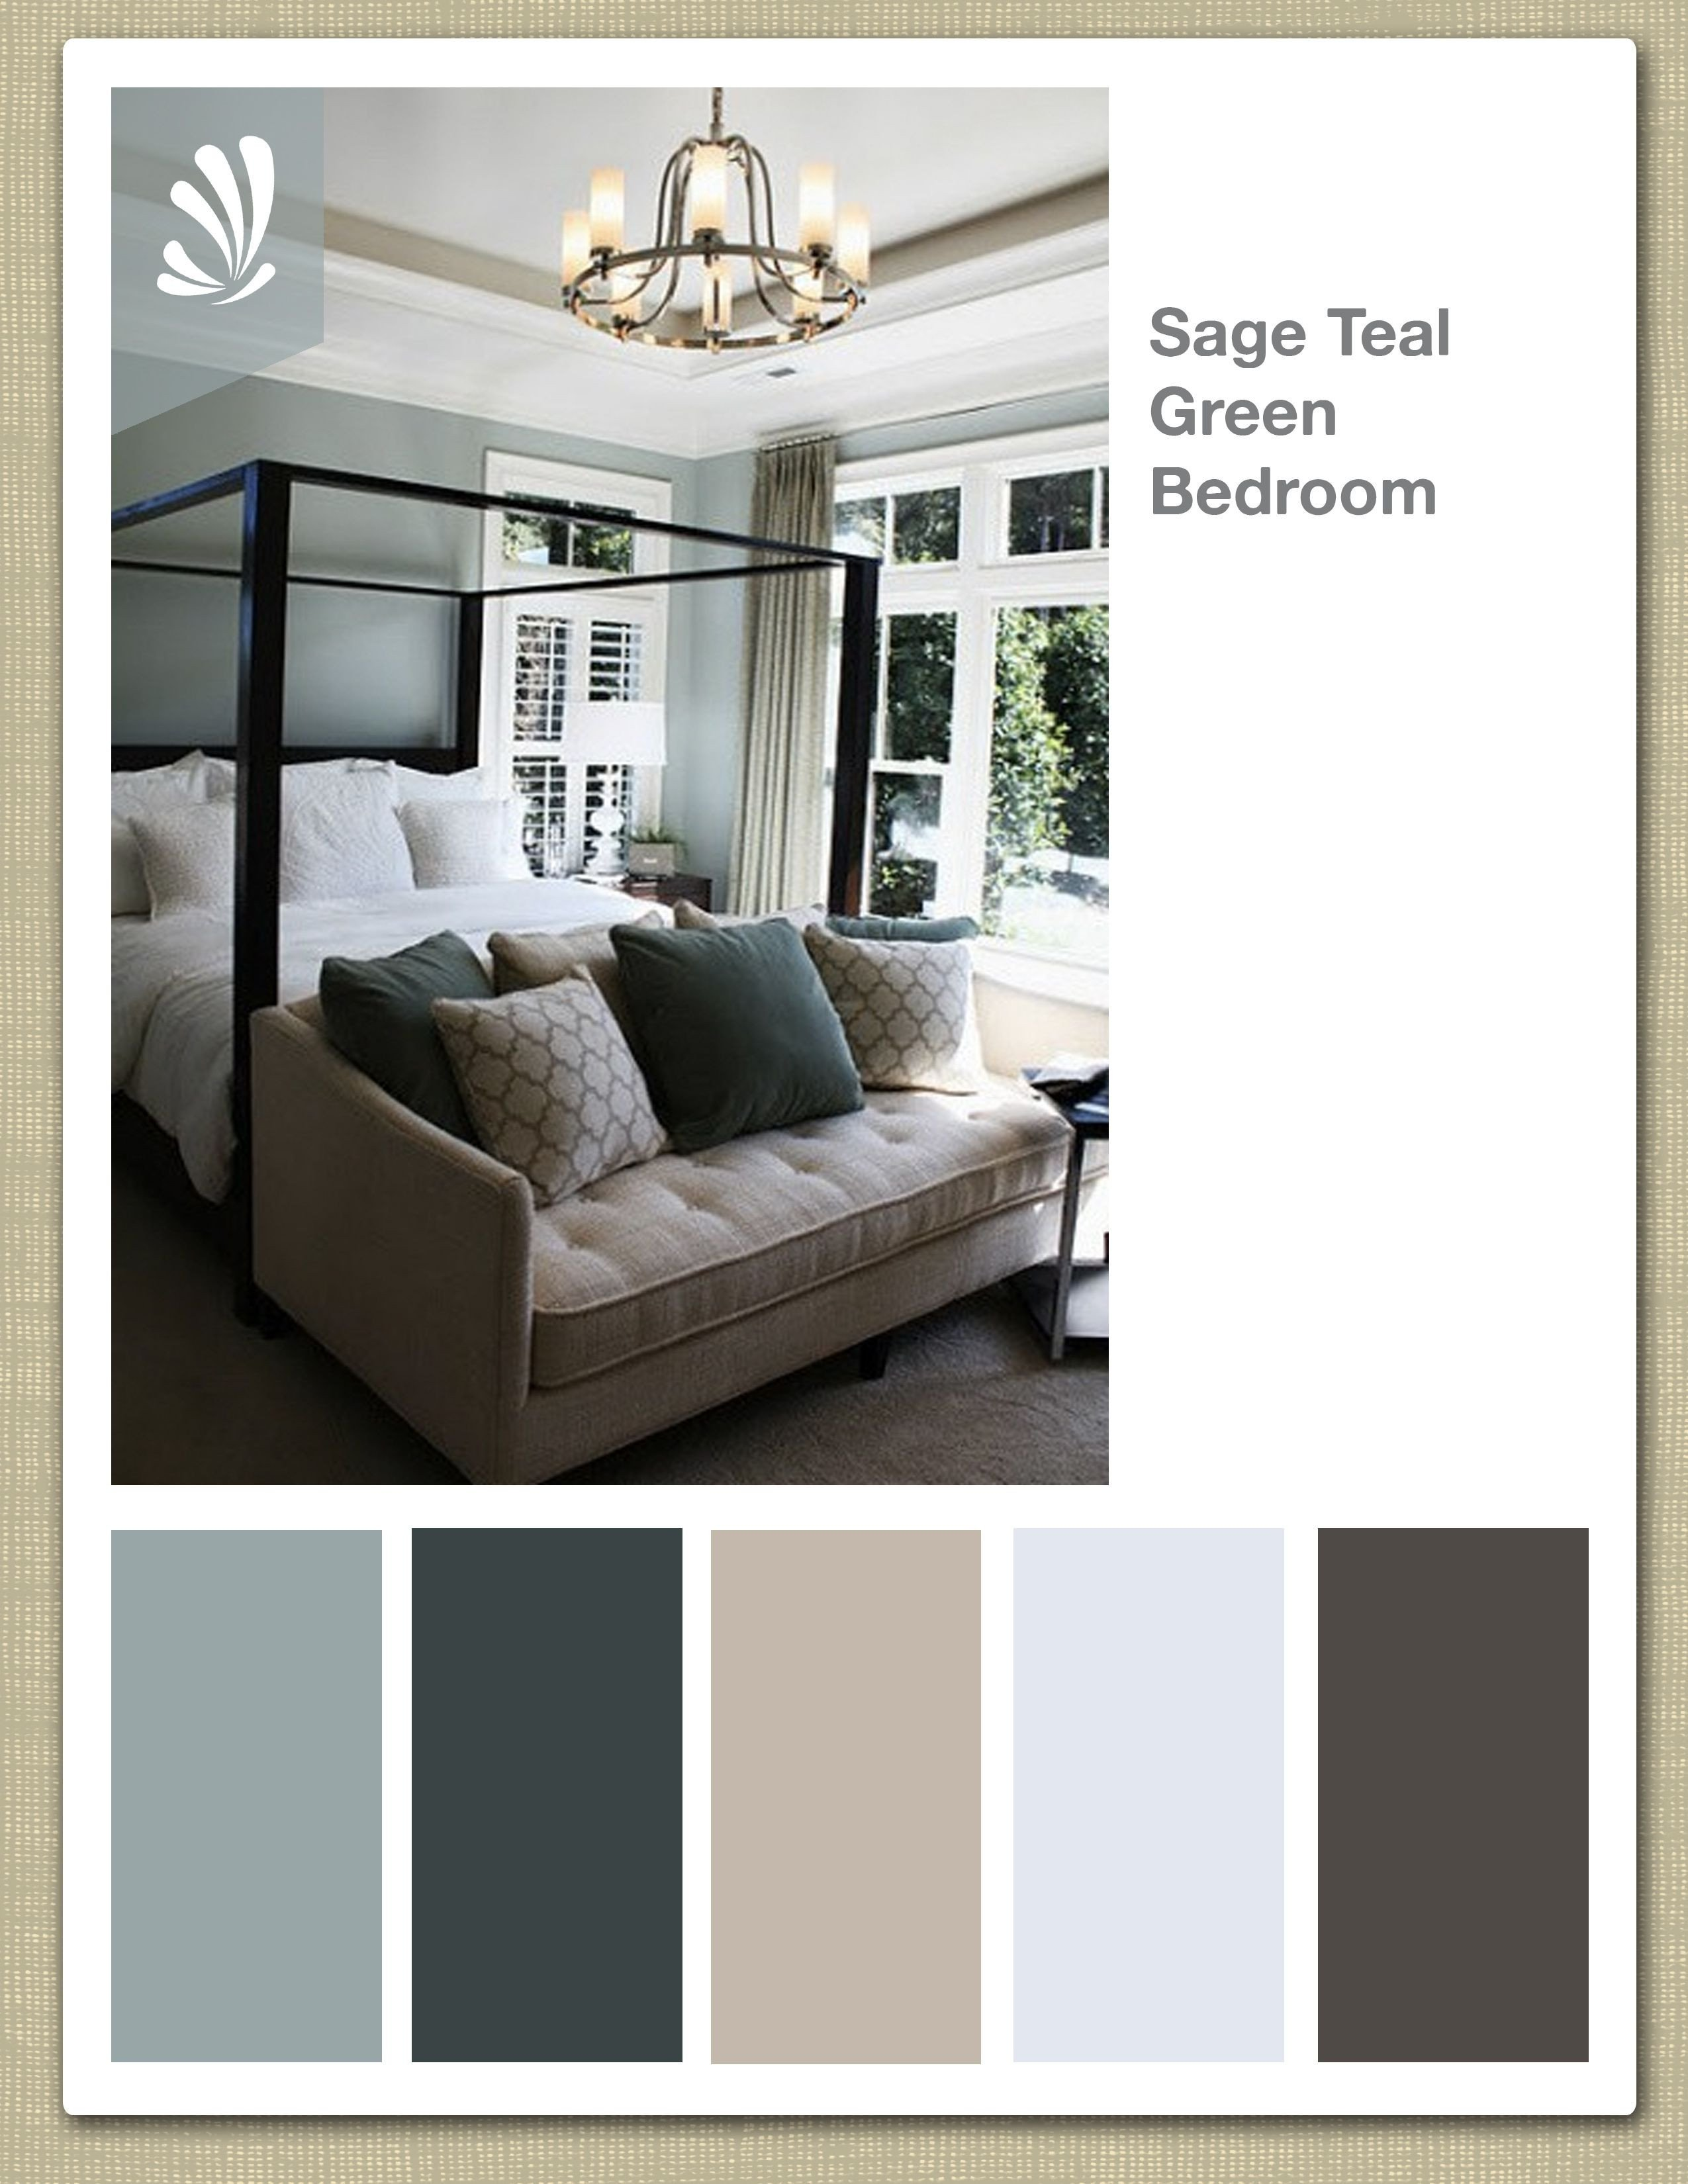 Teal and Gray Bedroom Awesome Sage Cream Oil Gray and Teal Green Color Palette soothing